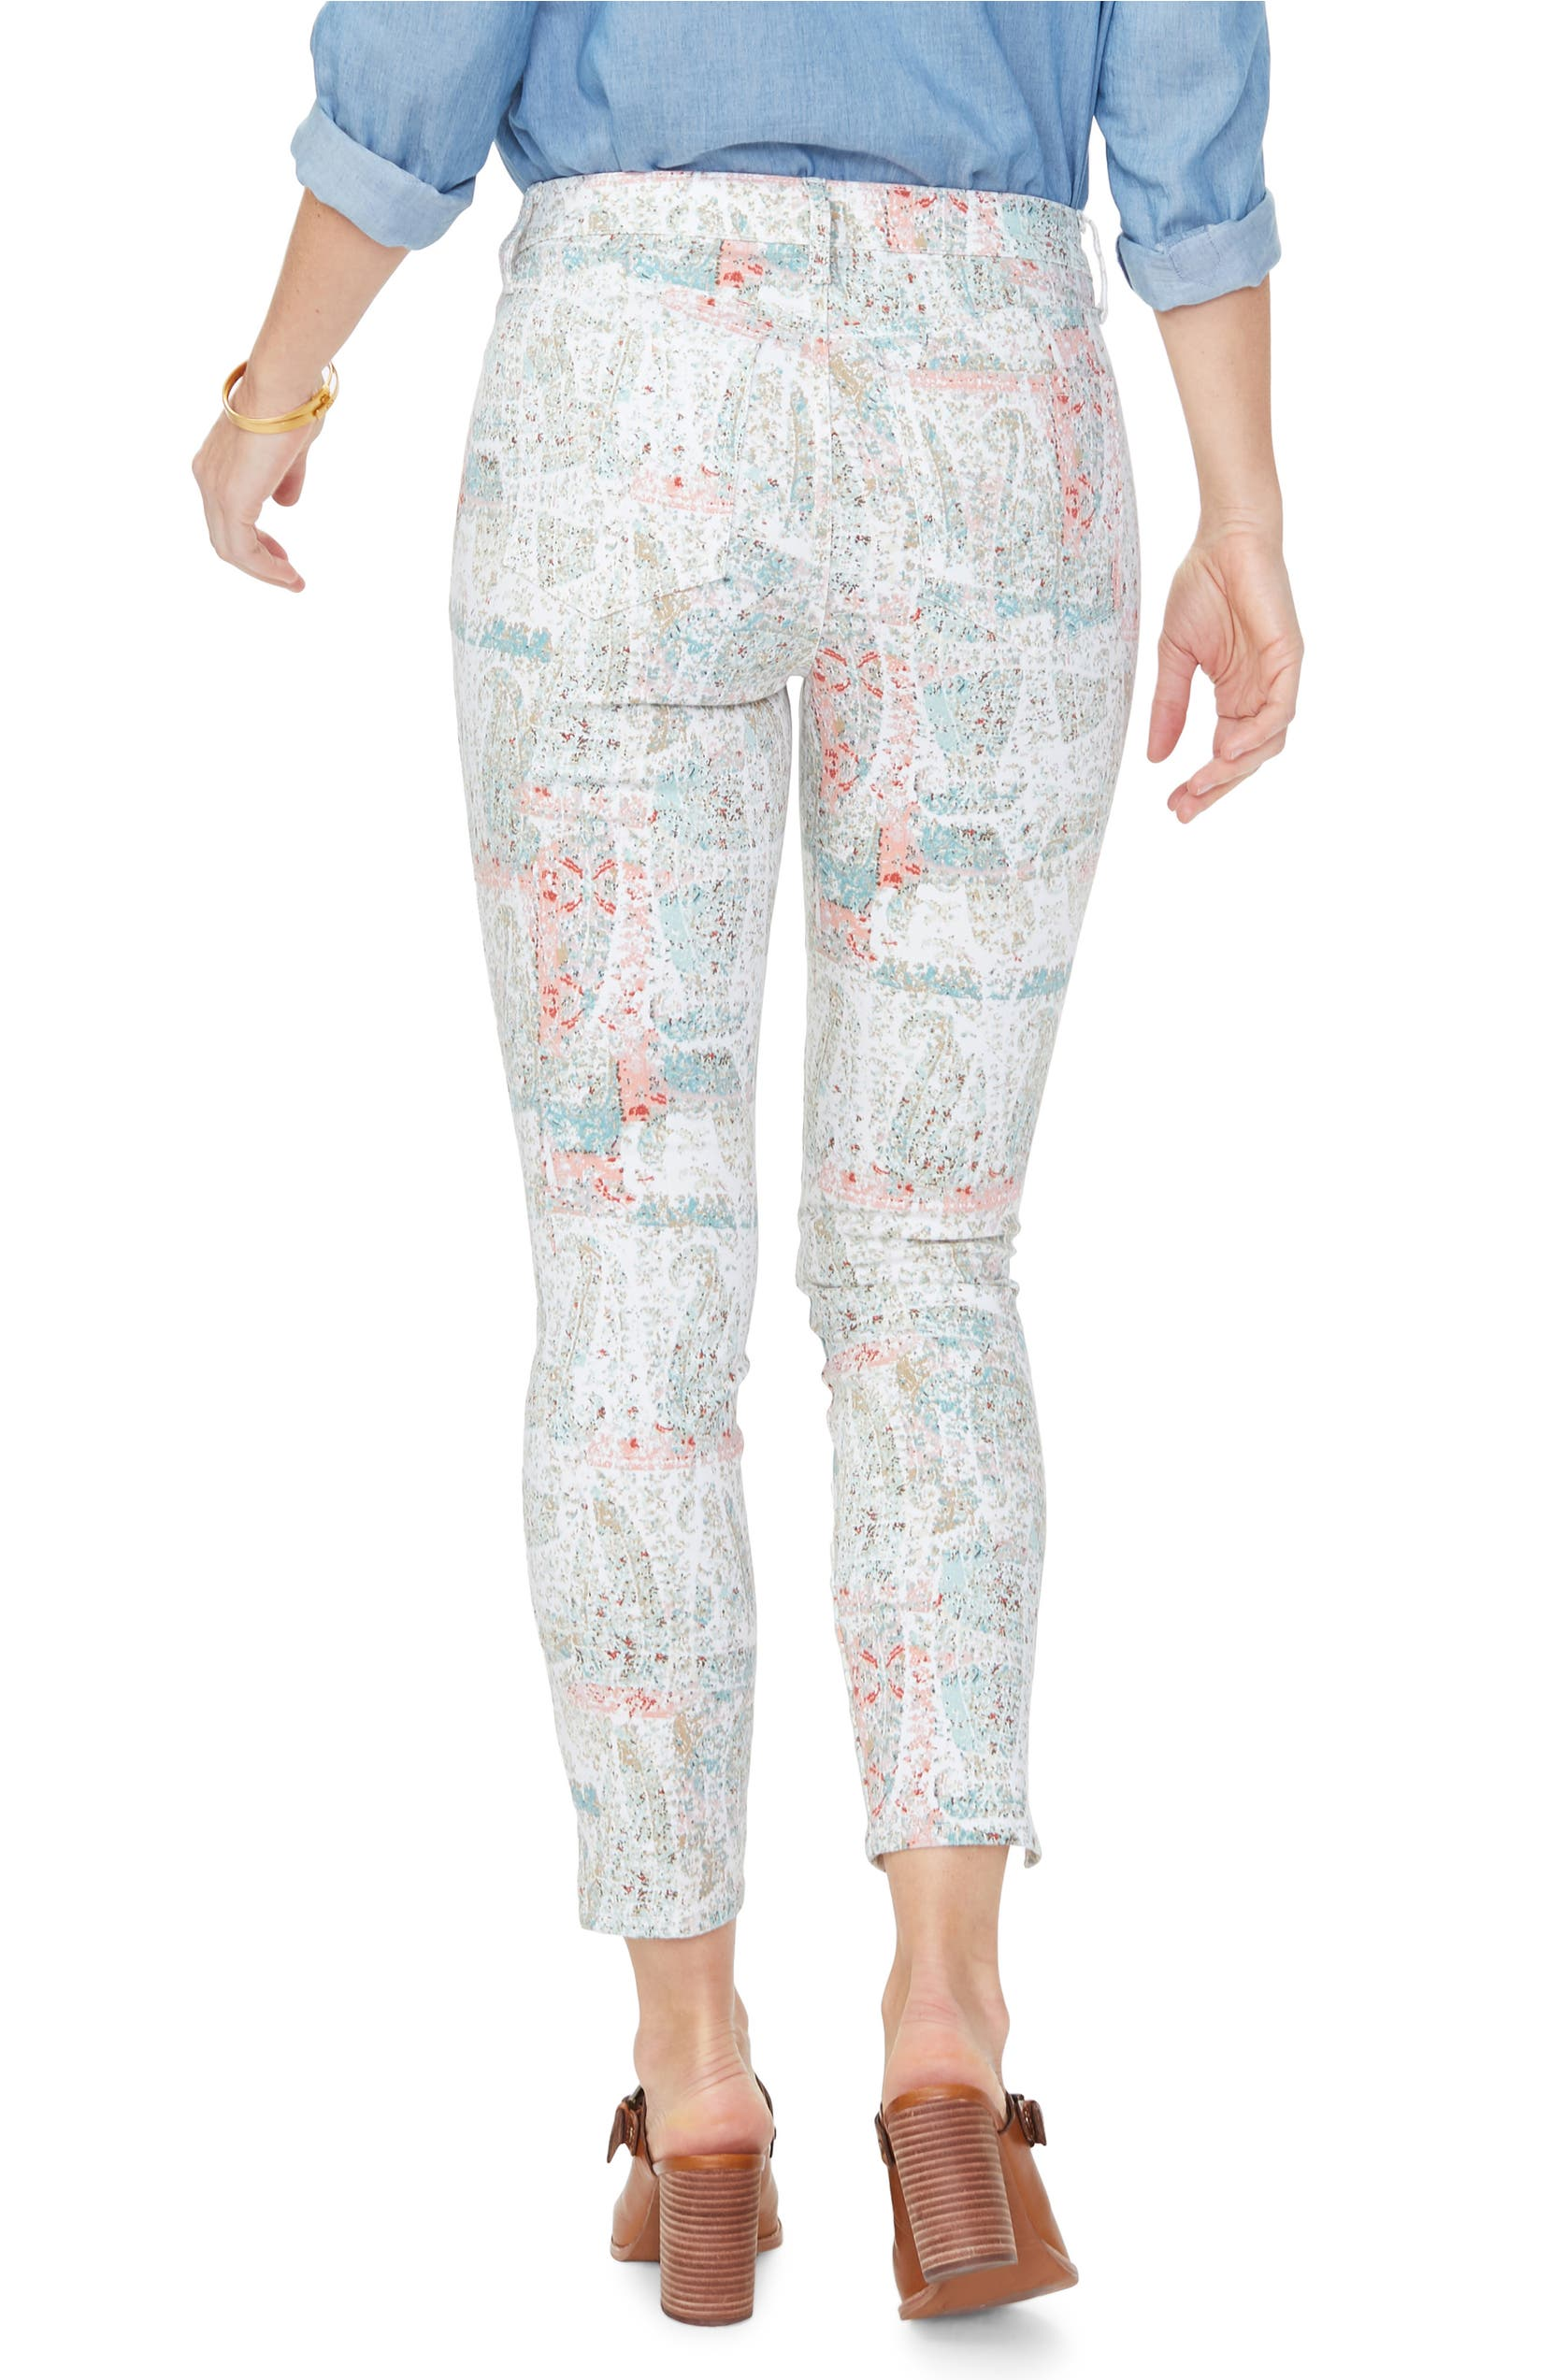 1a447cbca5e NYDJ Ami Ankle Slit Skinny Jeans (Canyon Clay Paisley Impression) |  Nordstrom